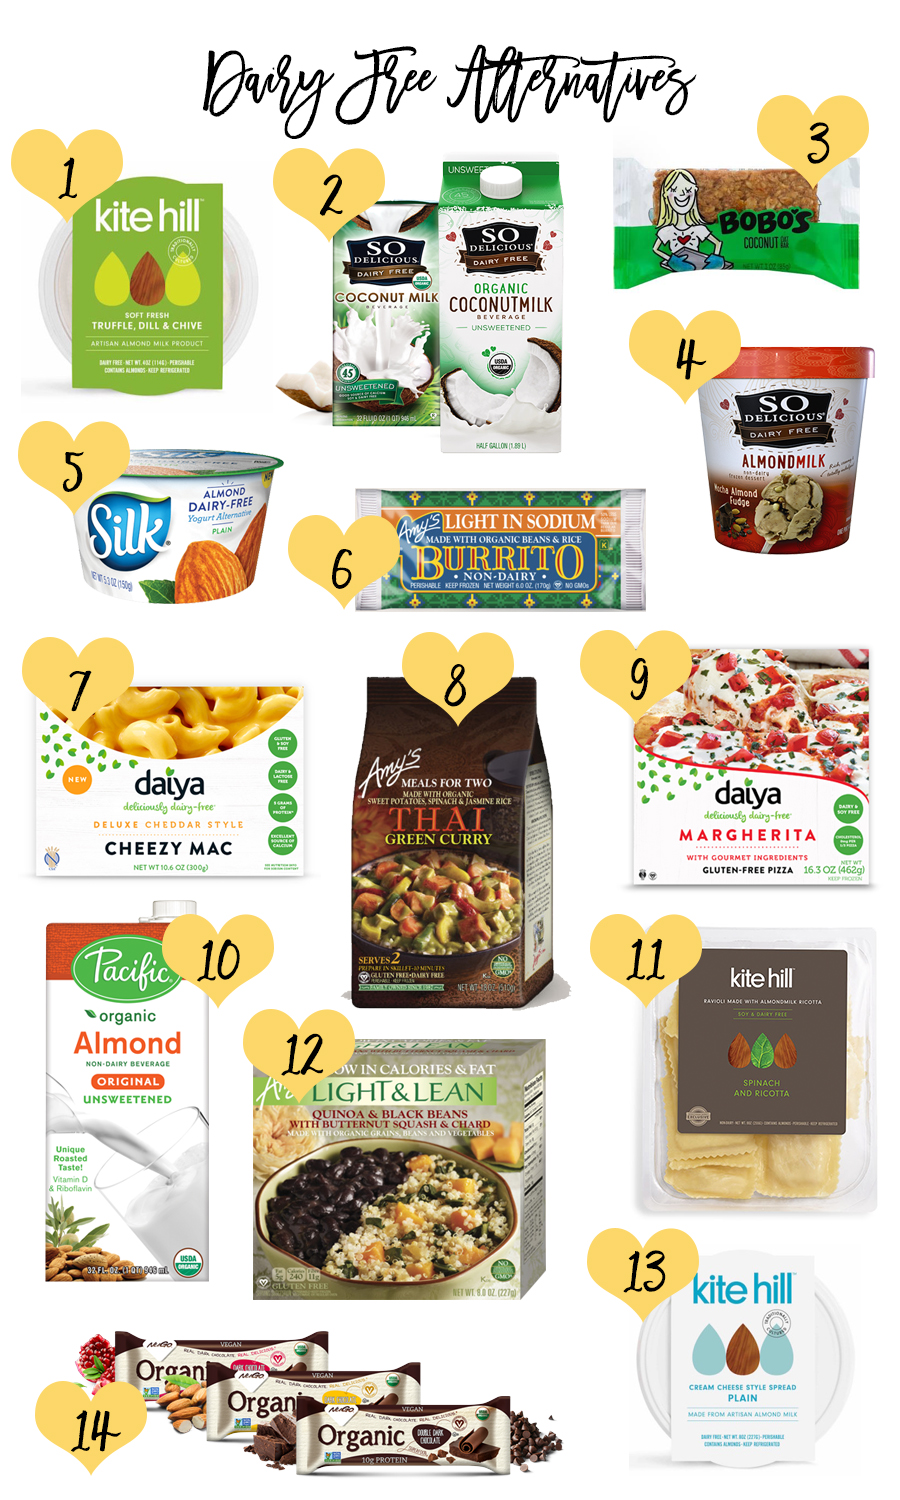 Dairy Free Alternatives-Dairy Free Products-Best Dairy Free Options-Have Need Want